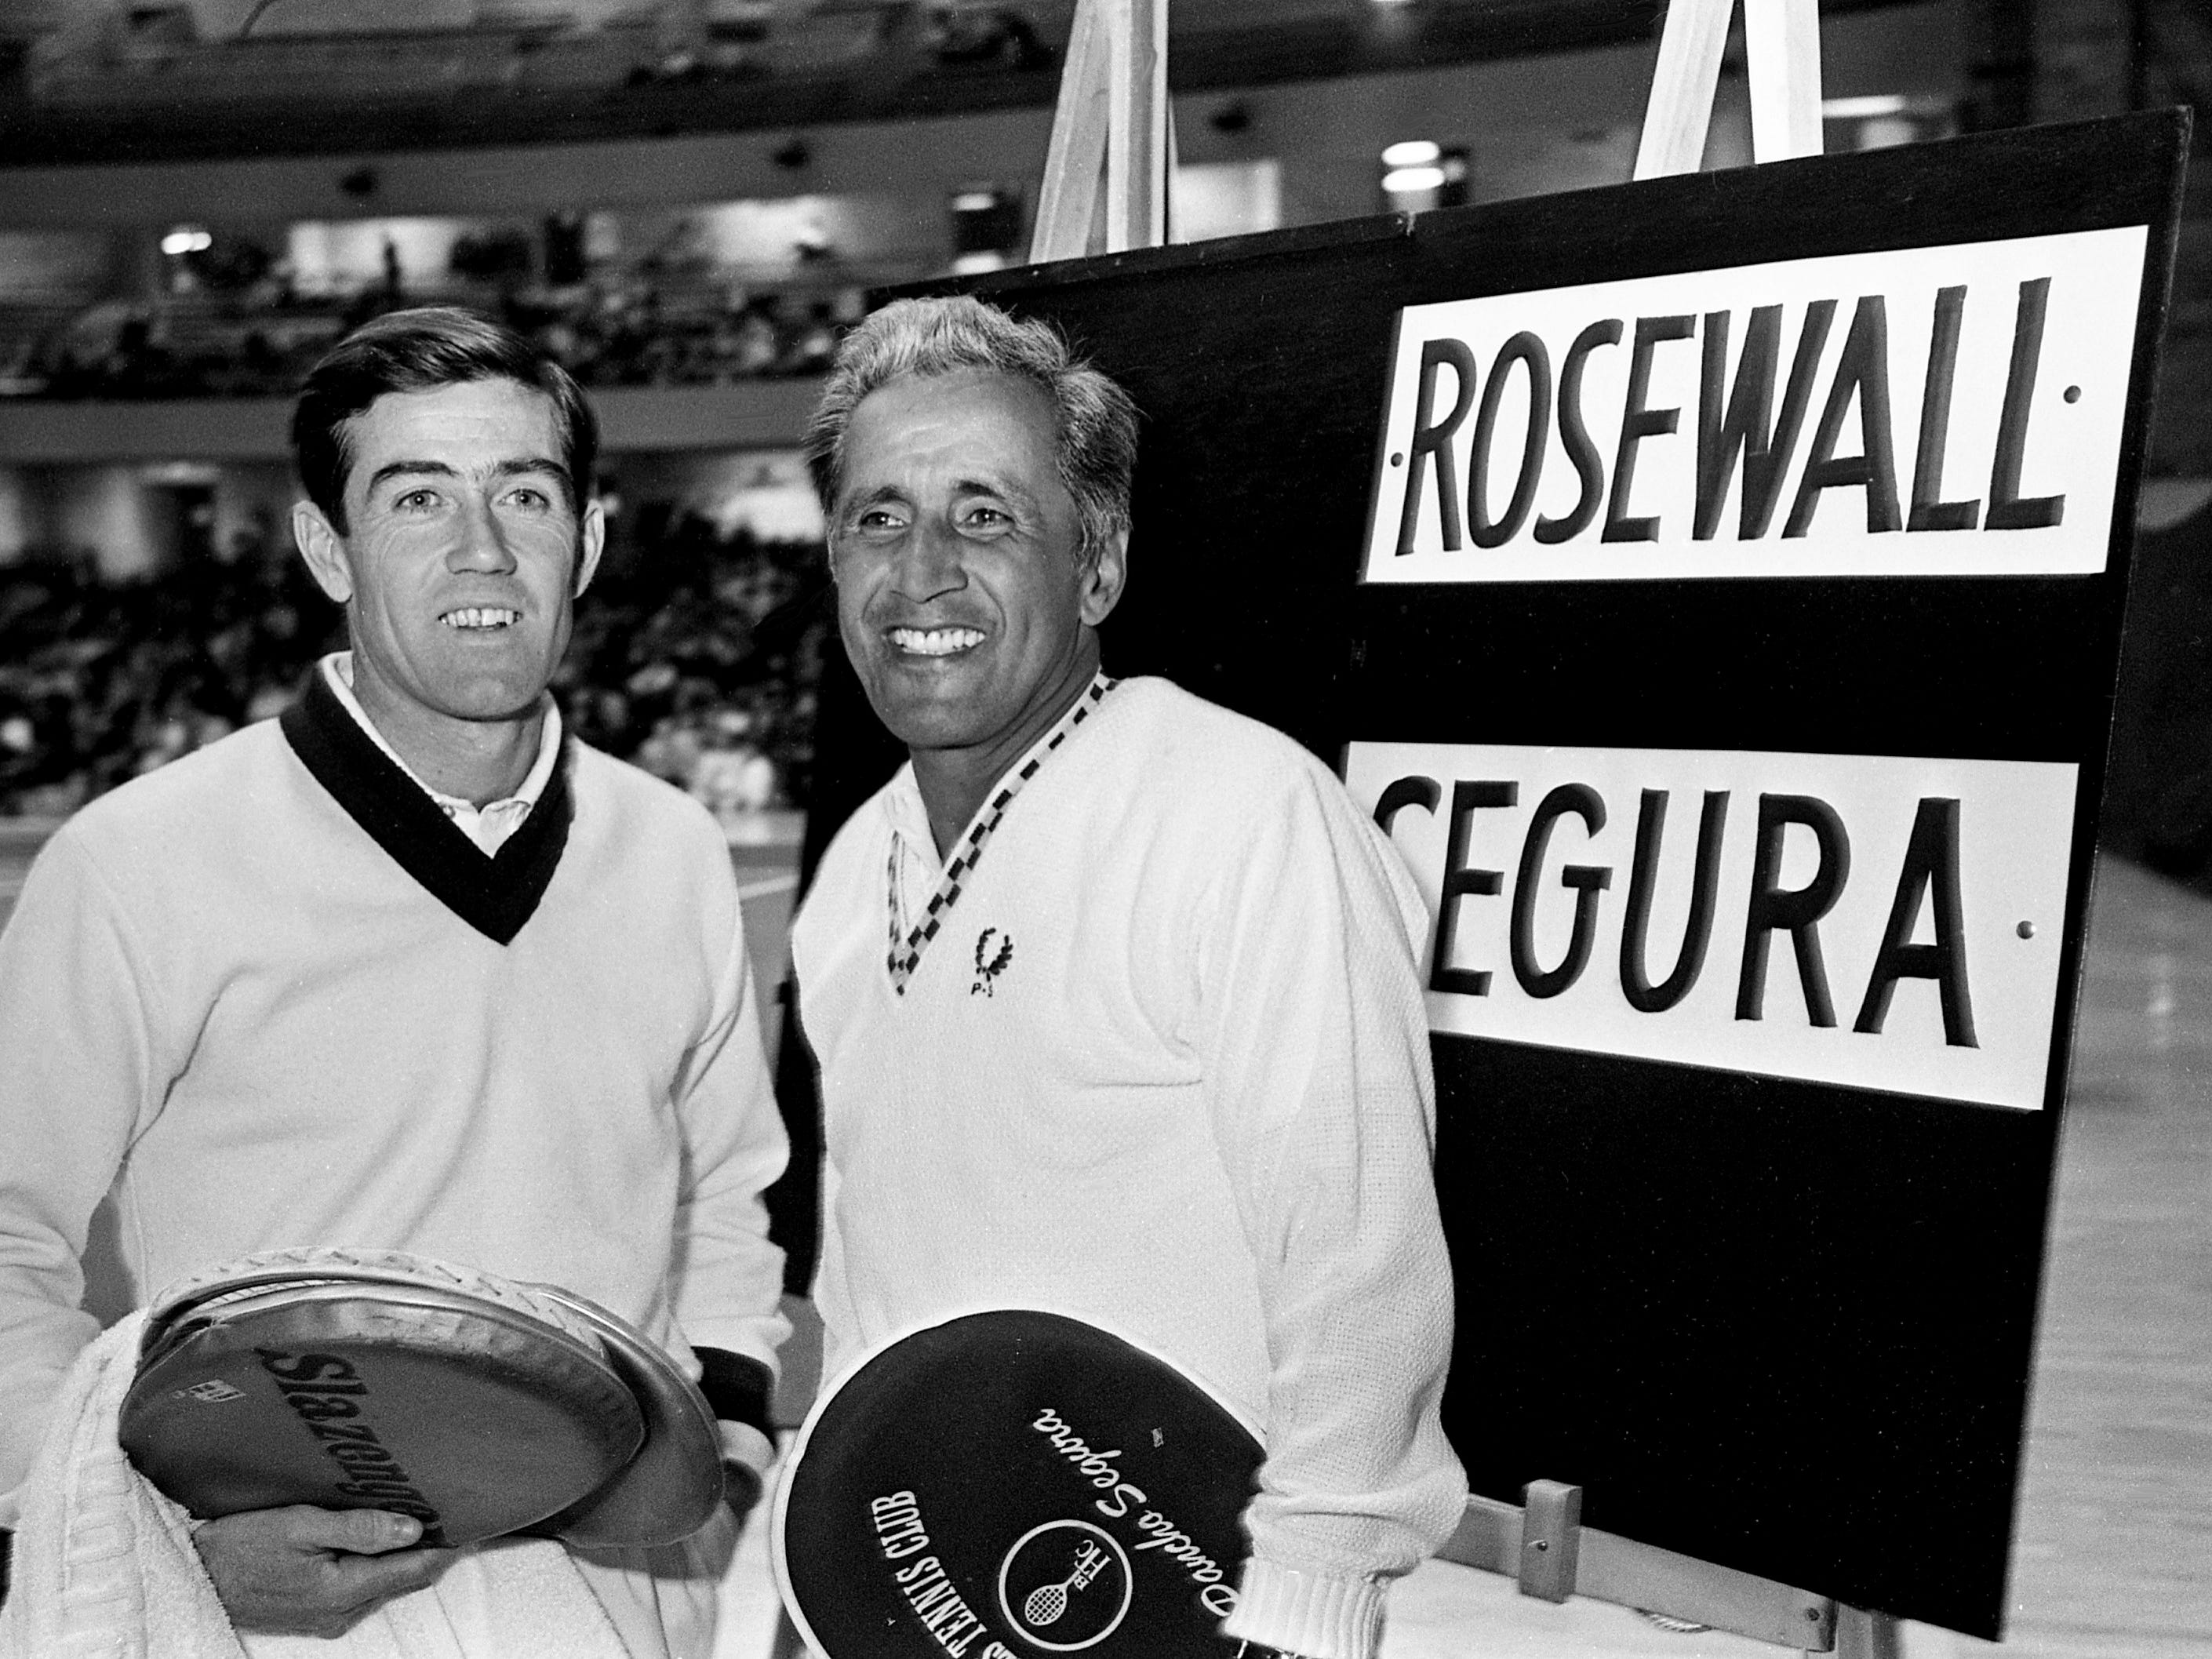 Pro players Ken Rosewall, left, and Pancho Segura pose for the camera before they kick off the Dixie Tennis Classic on Dec. 7, 1968, with the first match at Vanderbilt's Memorial Gym.